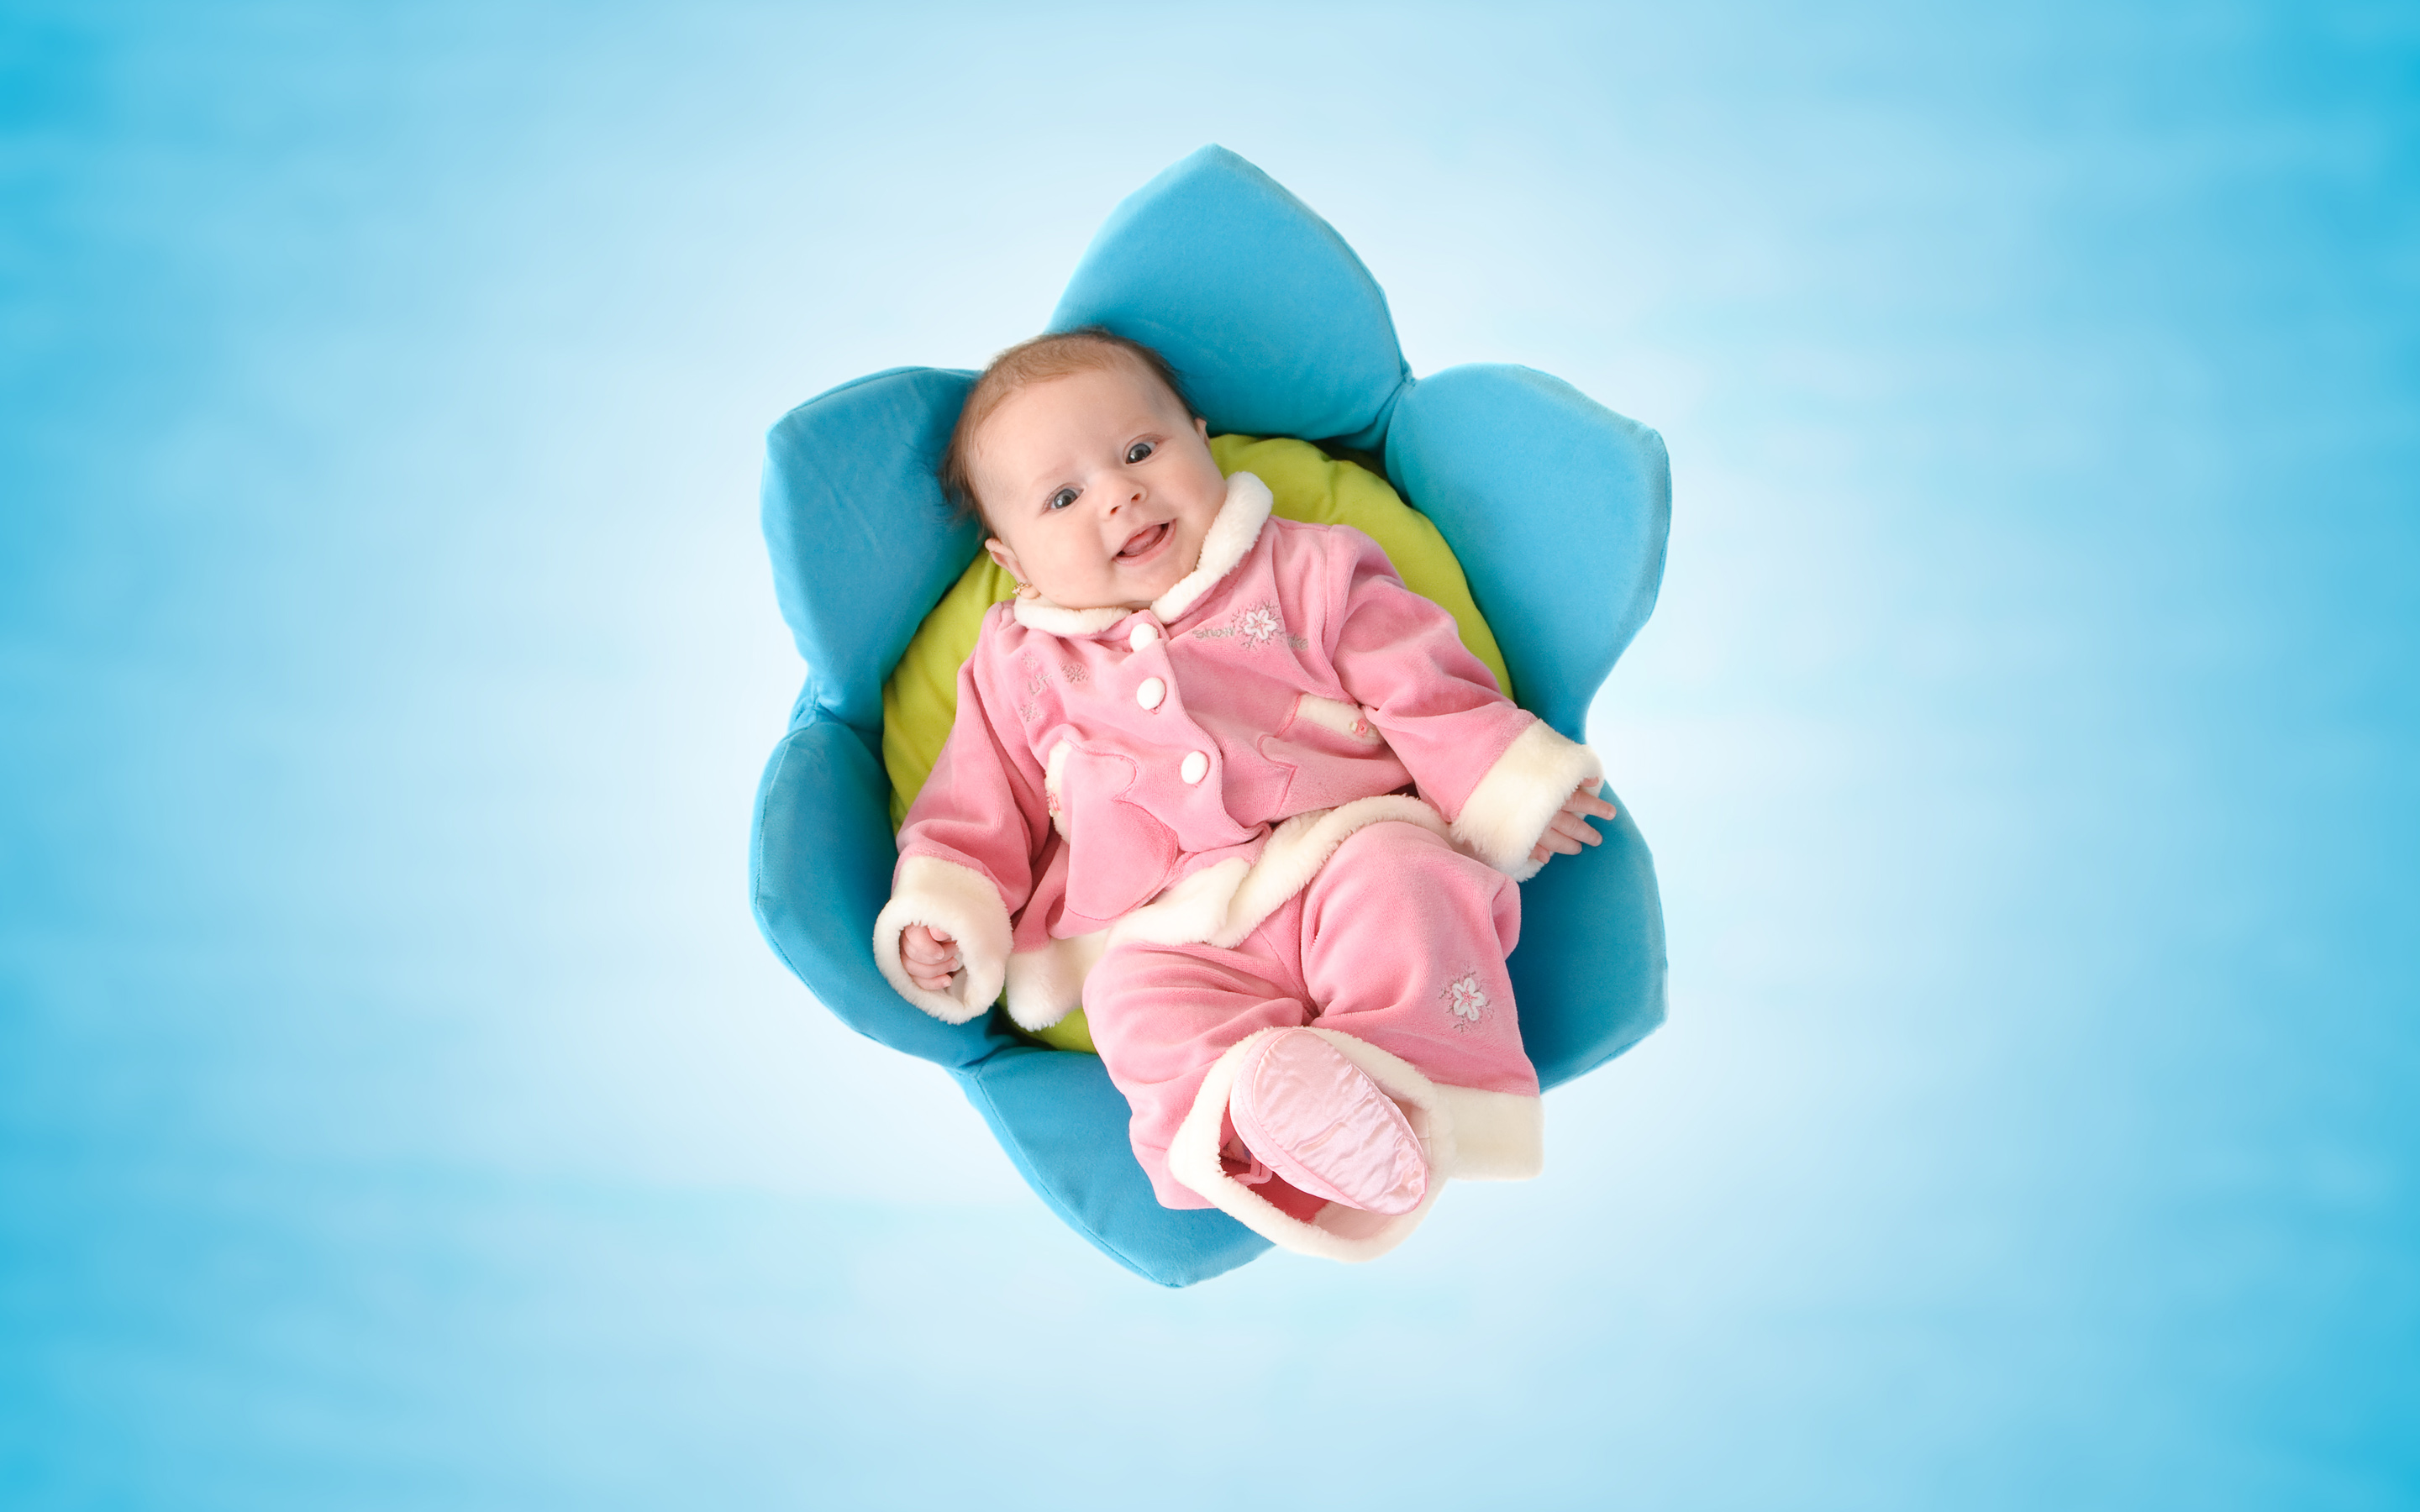 Download Cute Newborn Baby Cute Baby For Your Mobile Cell Phone